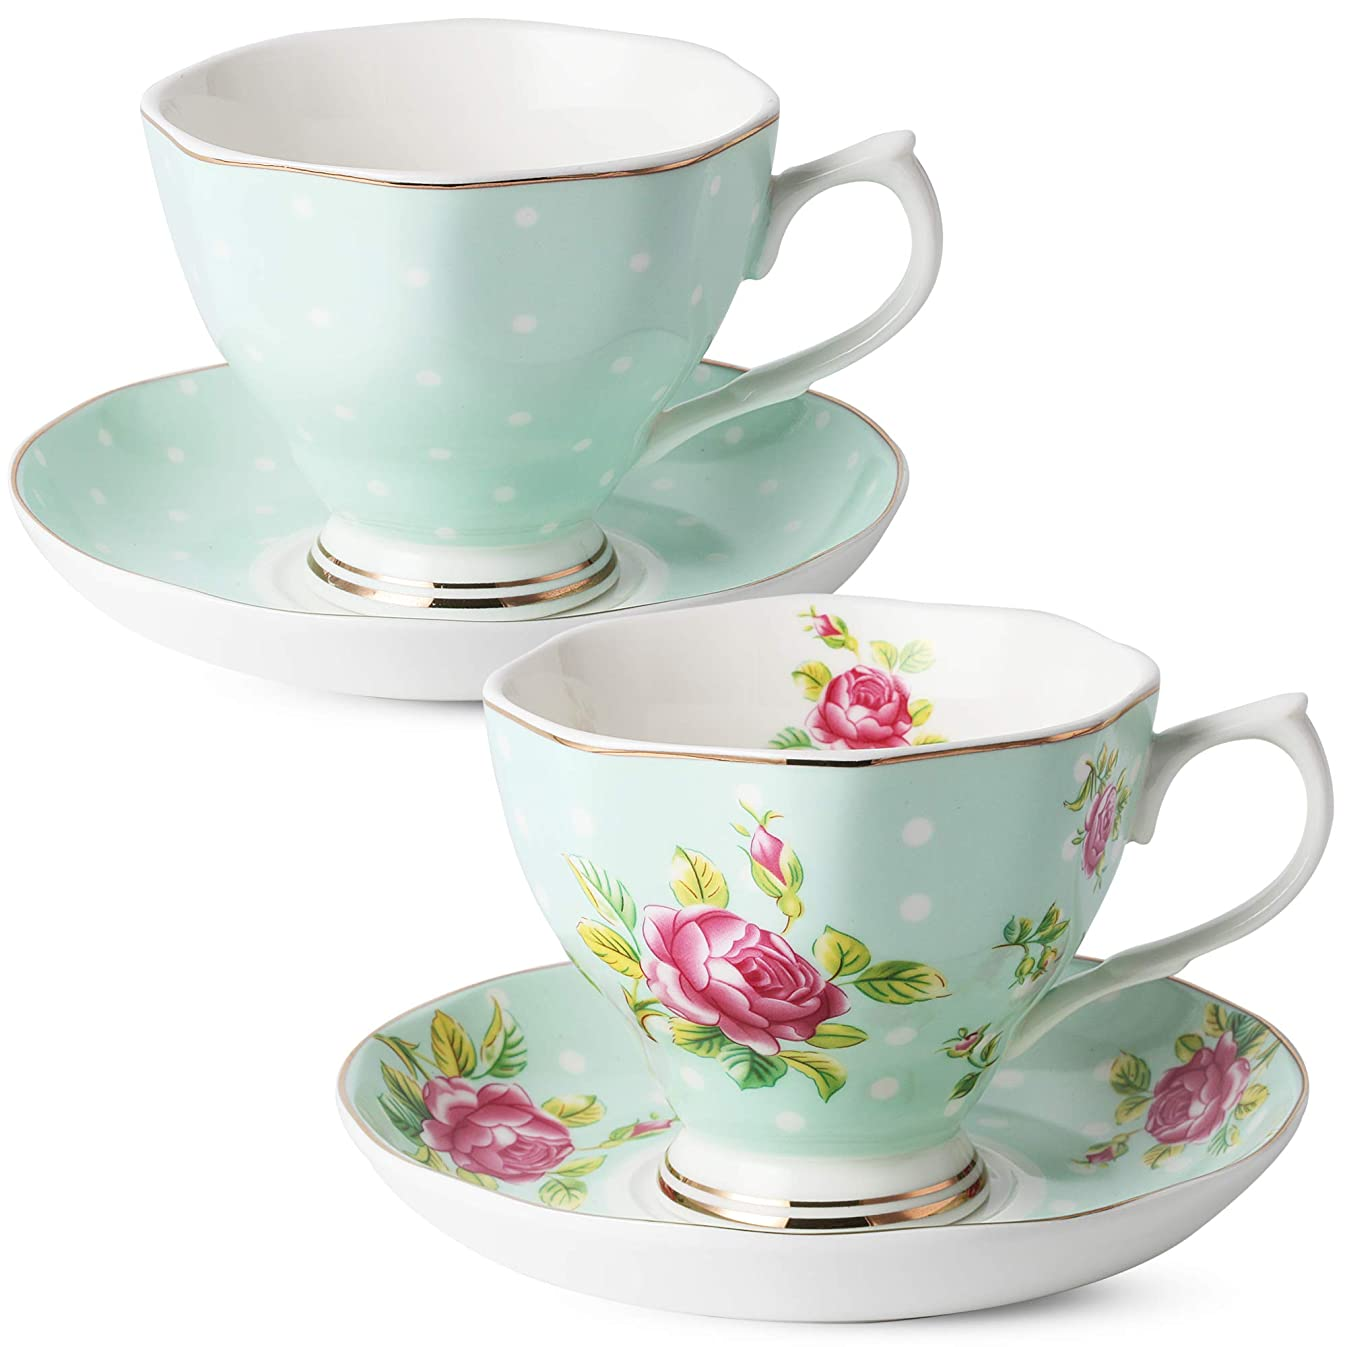 BT?T- Floral Tea Cups and Saucers, Set of 2 (Green - 8 oz) with Gold Trim and Gift Box, Coffee Cups, Floral Tea Cup Set, British Tea Cups, Porcelain Tea Set, Tea Sets for Women, Latte Cups